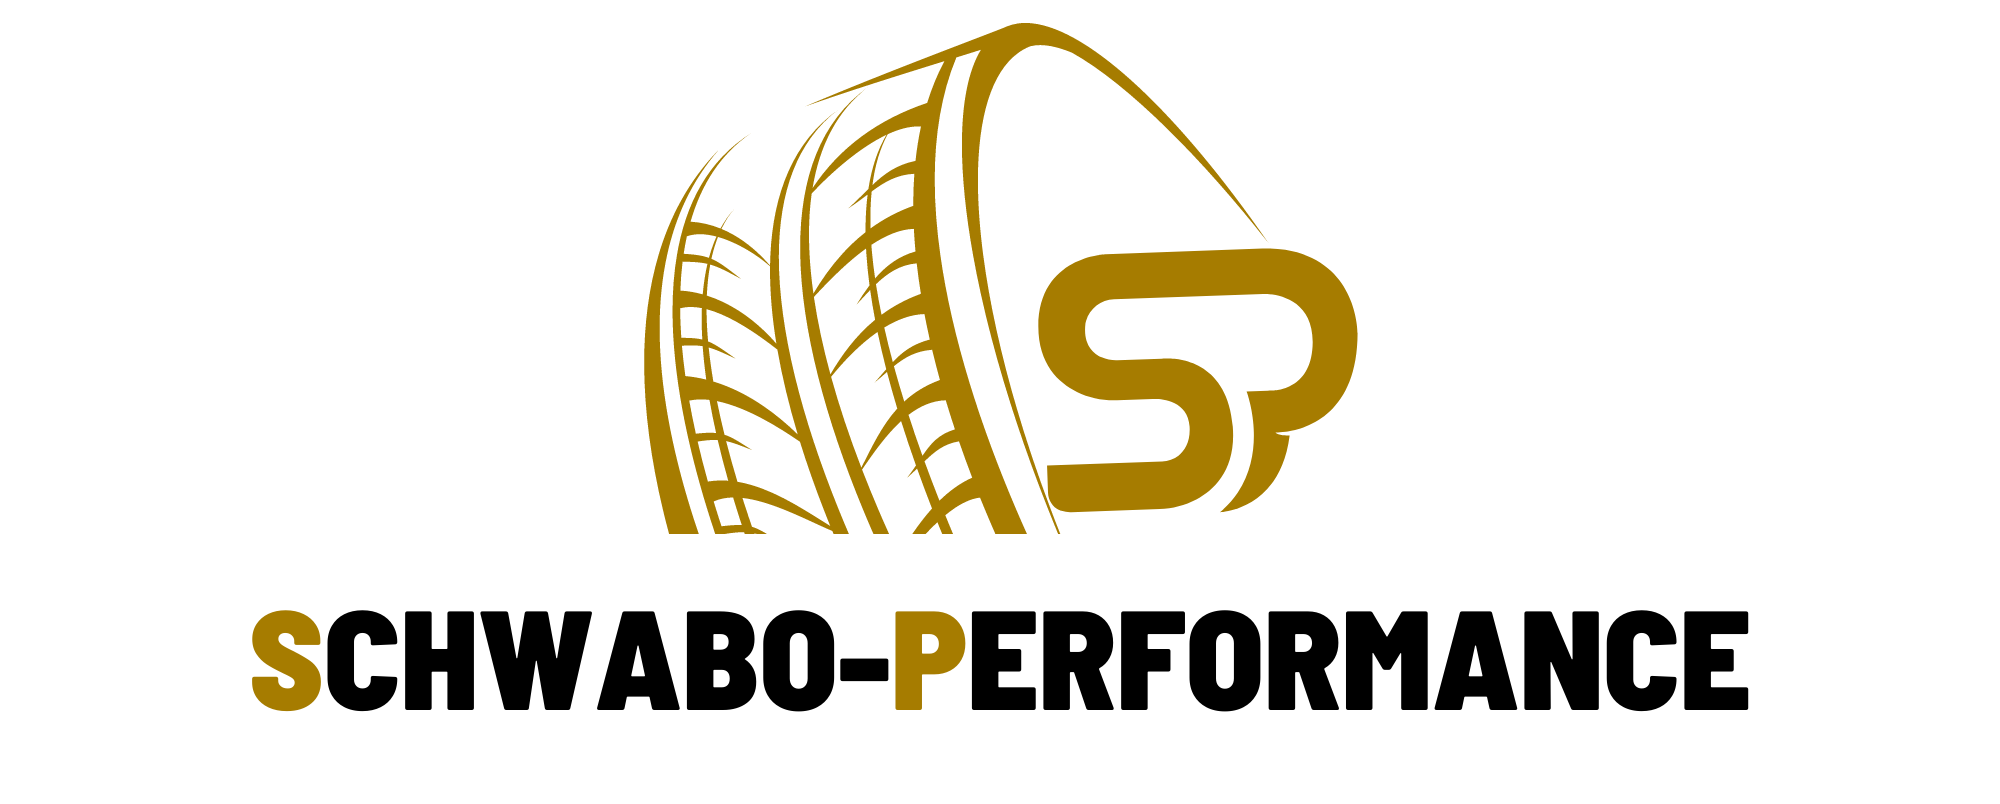 schwabo-performance